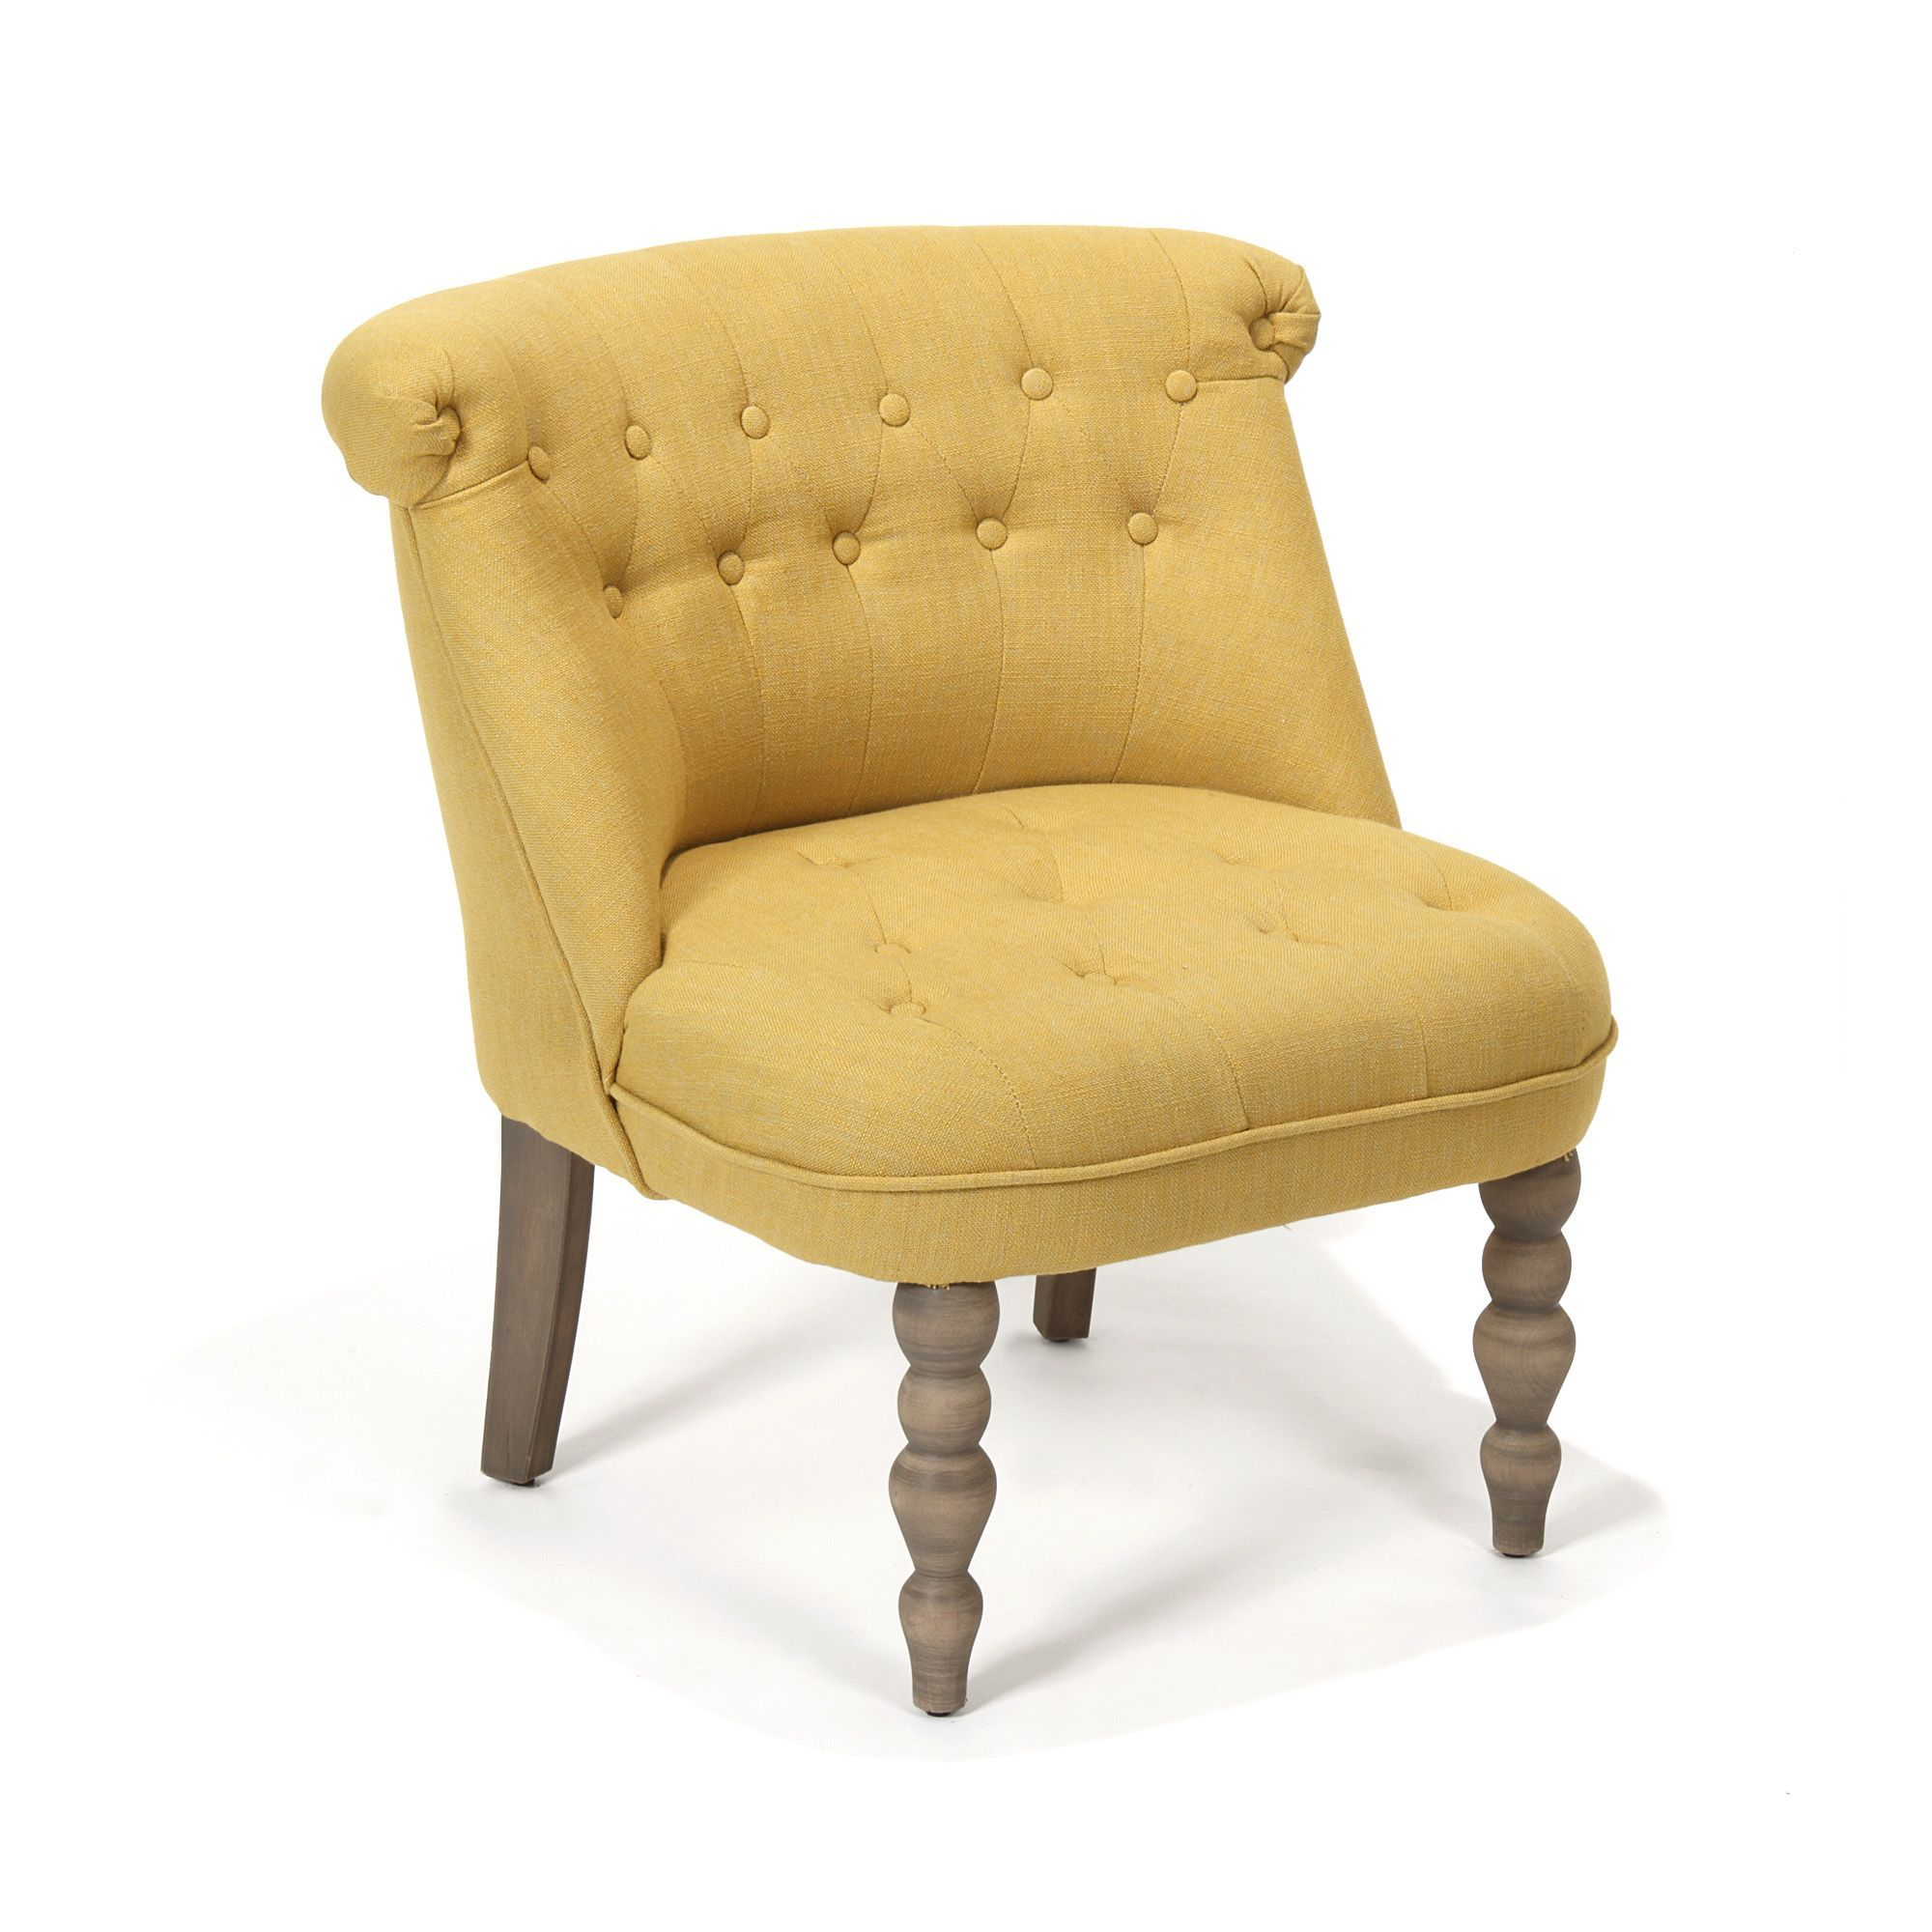 Chanteloup Fauteuil cosy style crapaud jaune | Yellow fashion ...